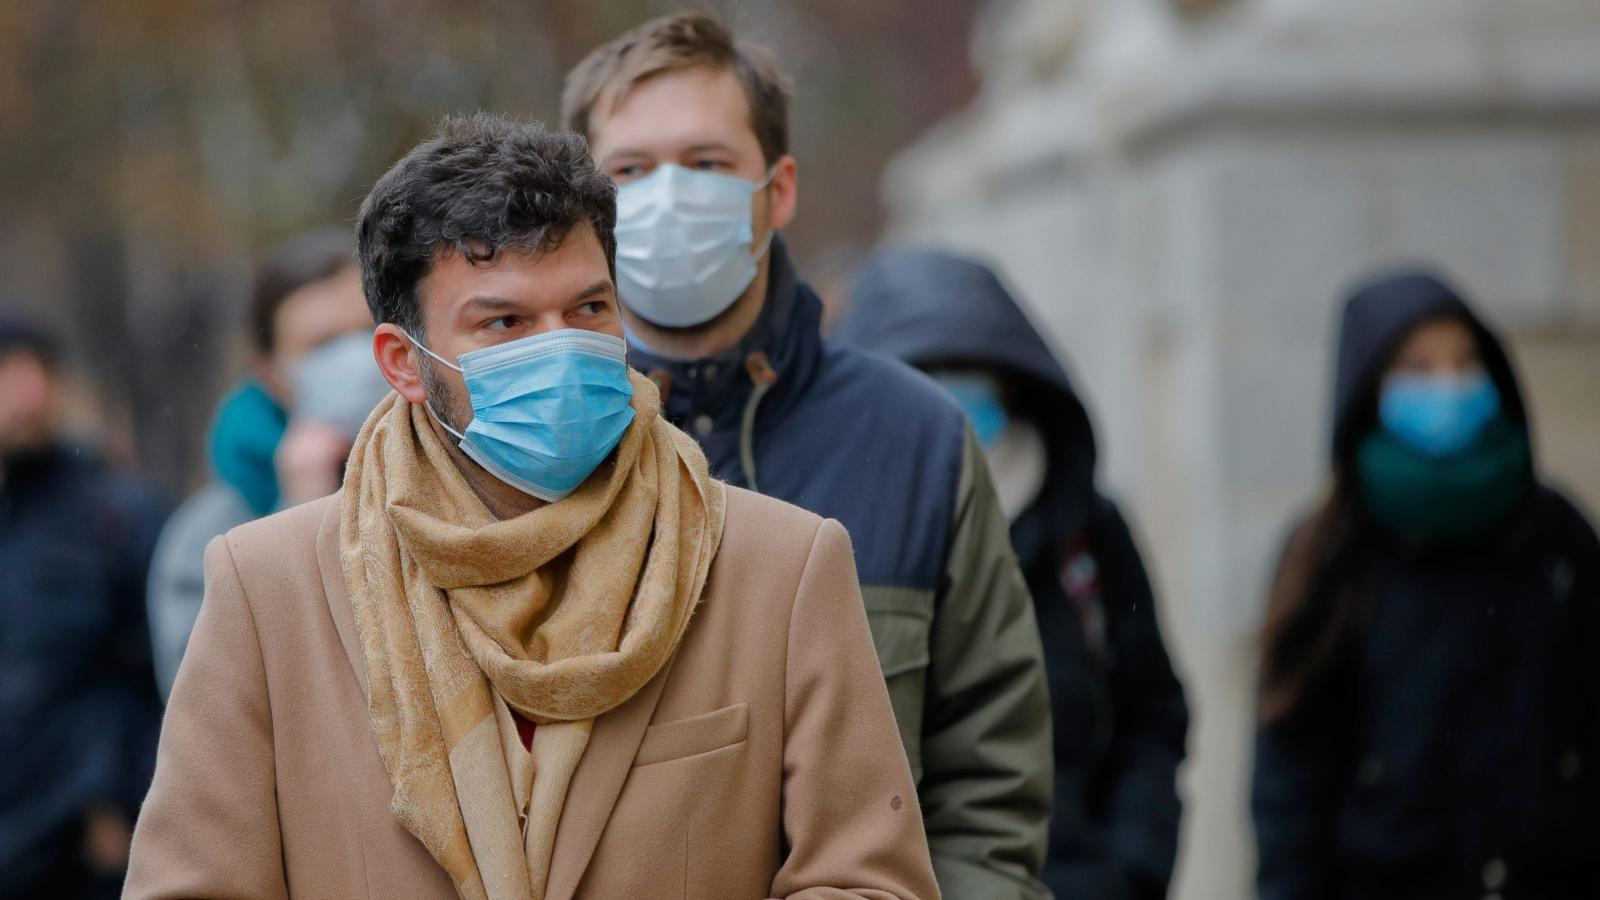 Years Air Pollution By European Reduces Average — Lives Of 2 Quartz An